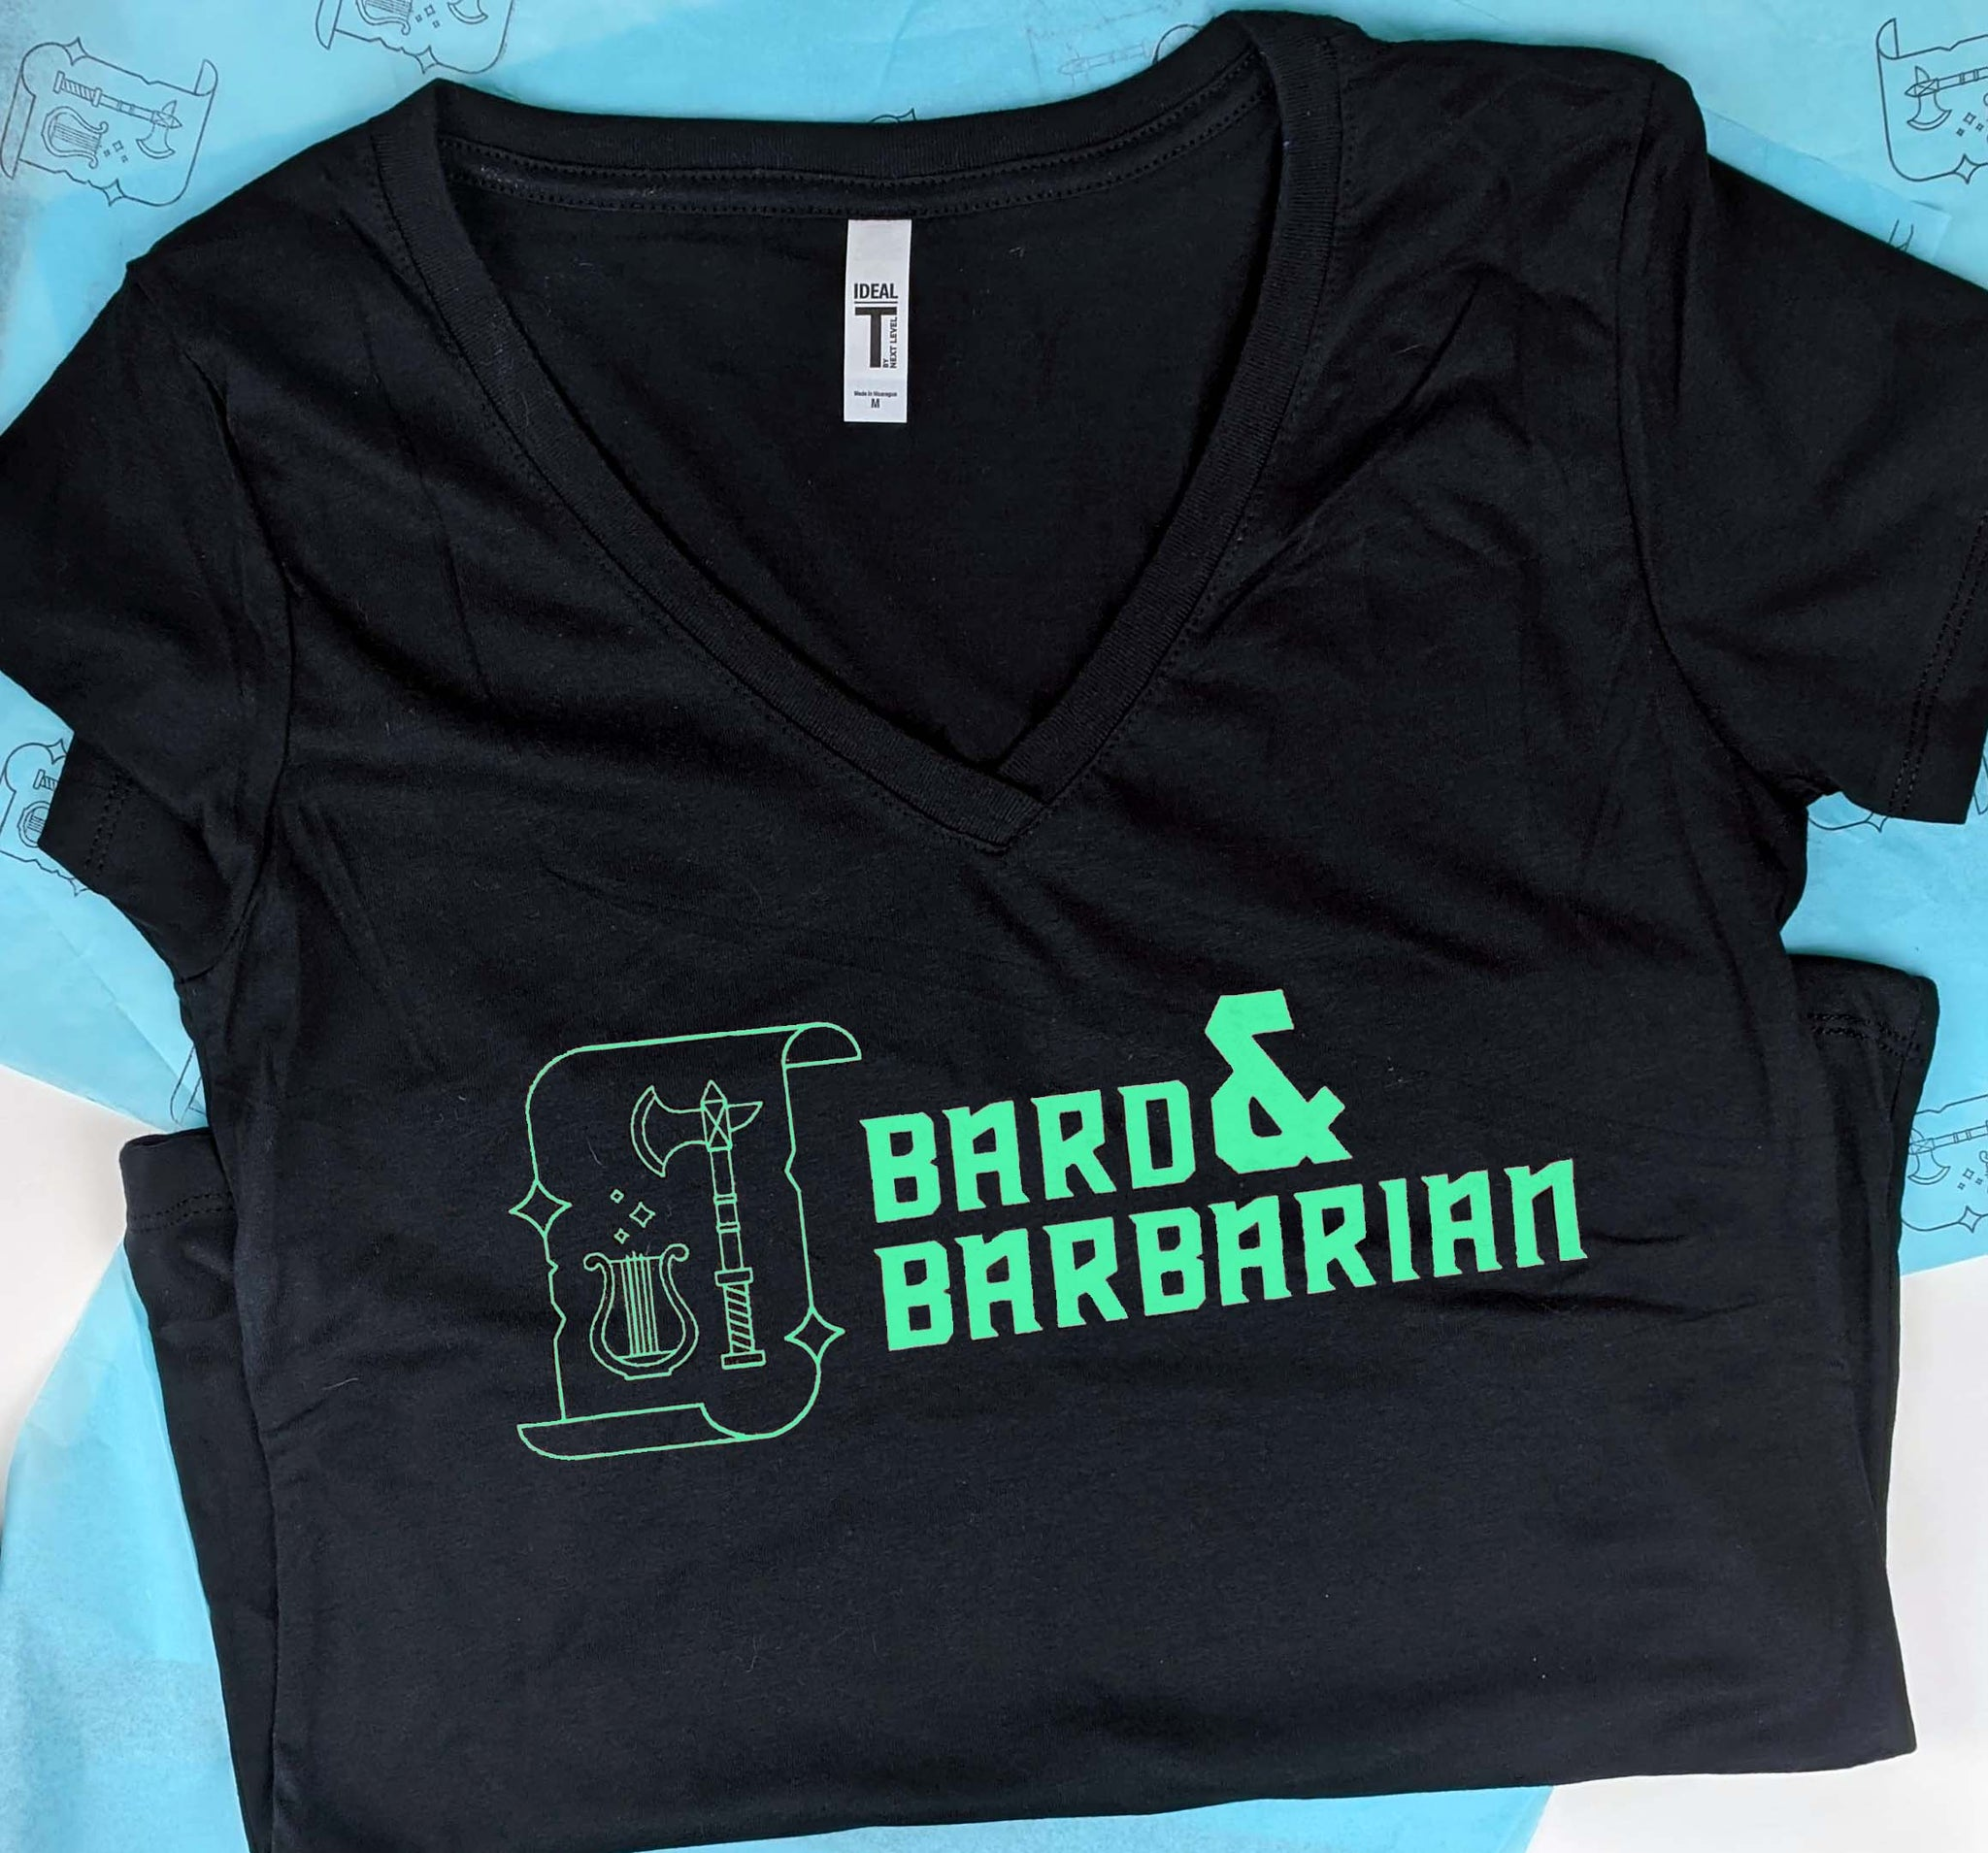 Bard and Barbarian Femme Cut V-Neck Tee